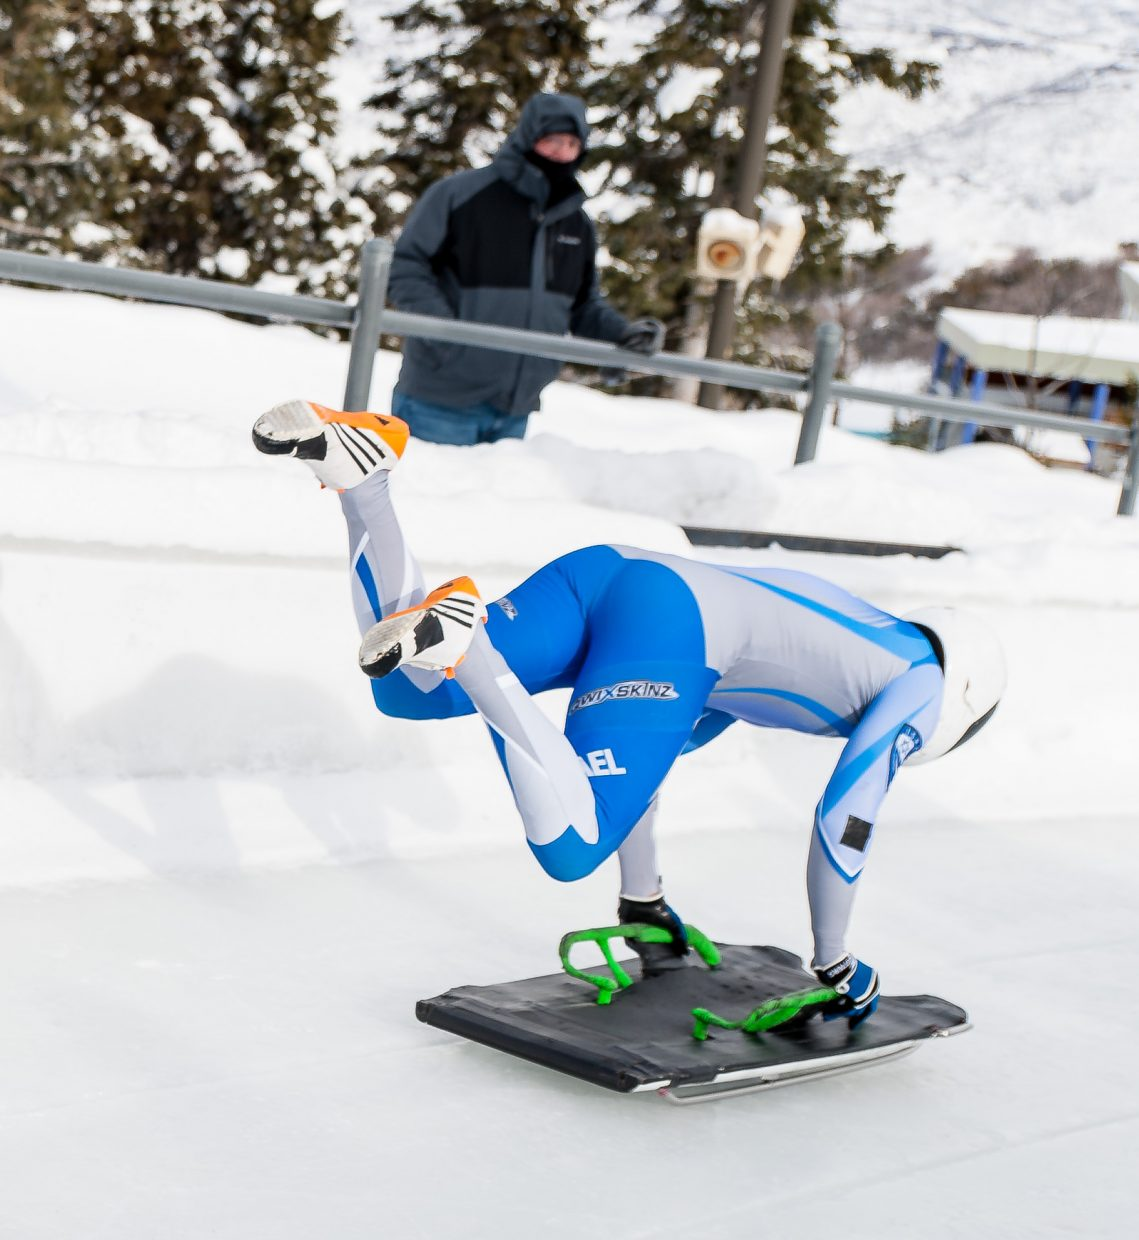 Larry Sidney is training with the hope of qualifying for the 2018 Winter Olympics.